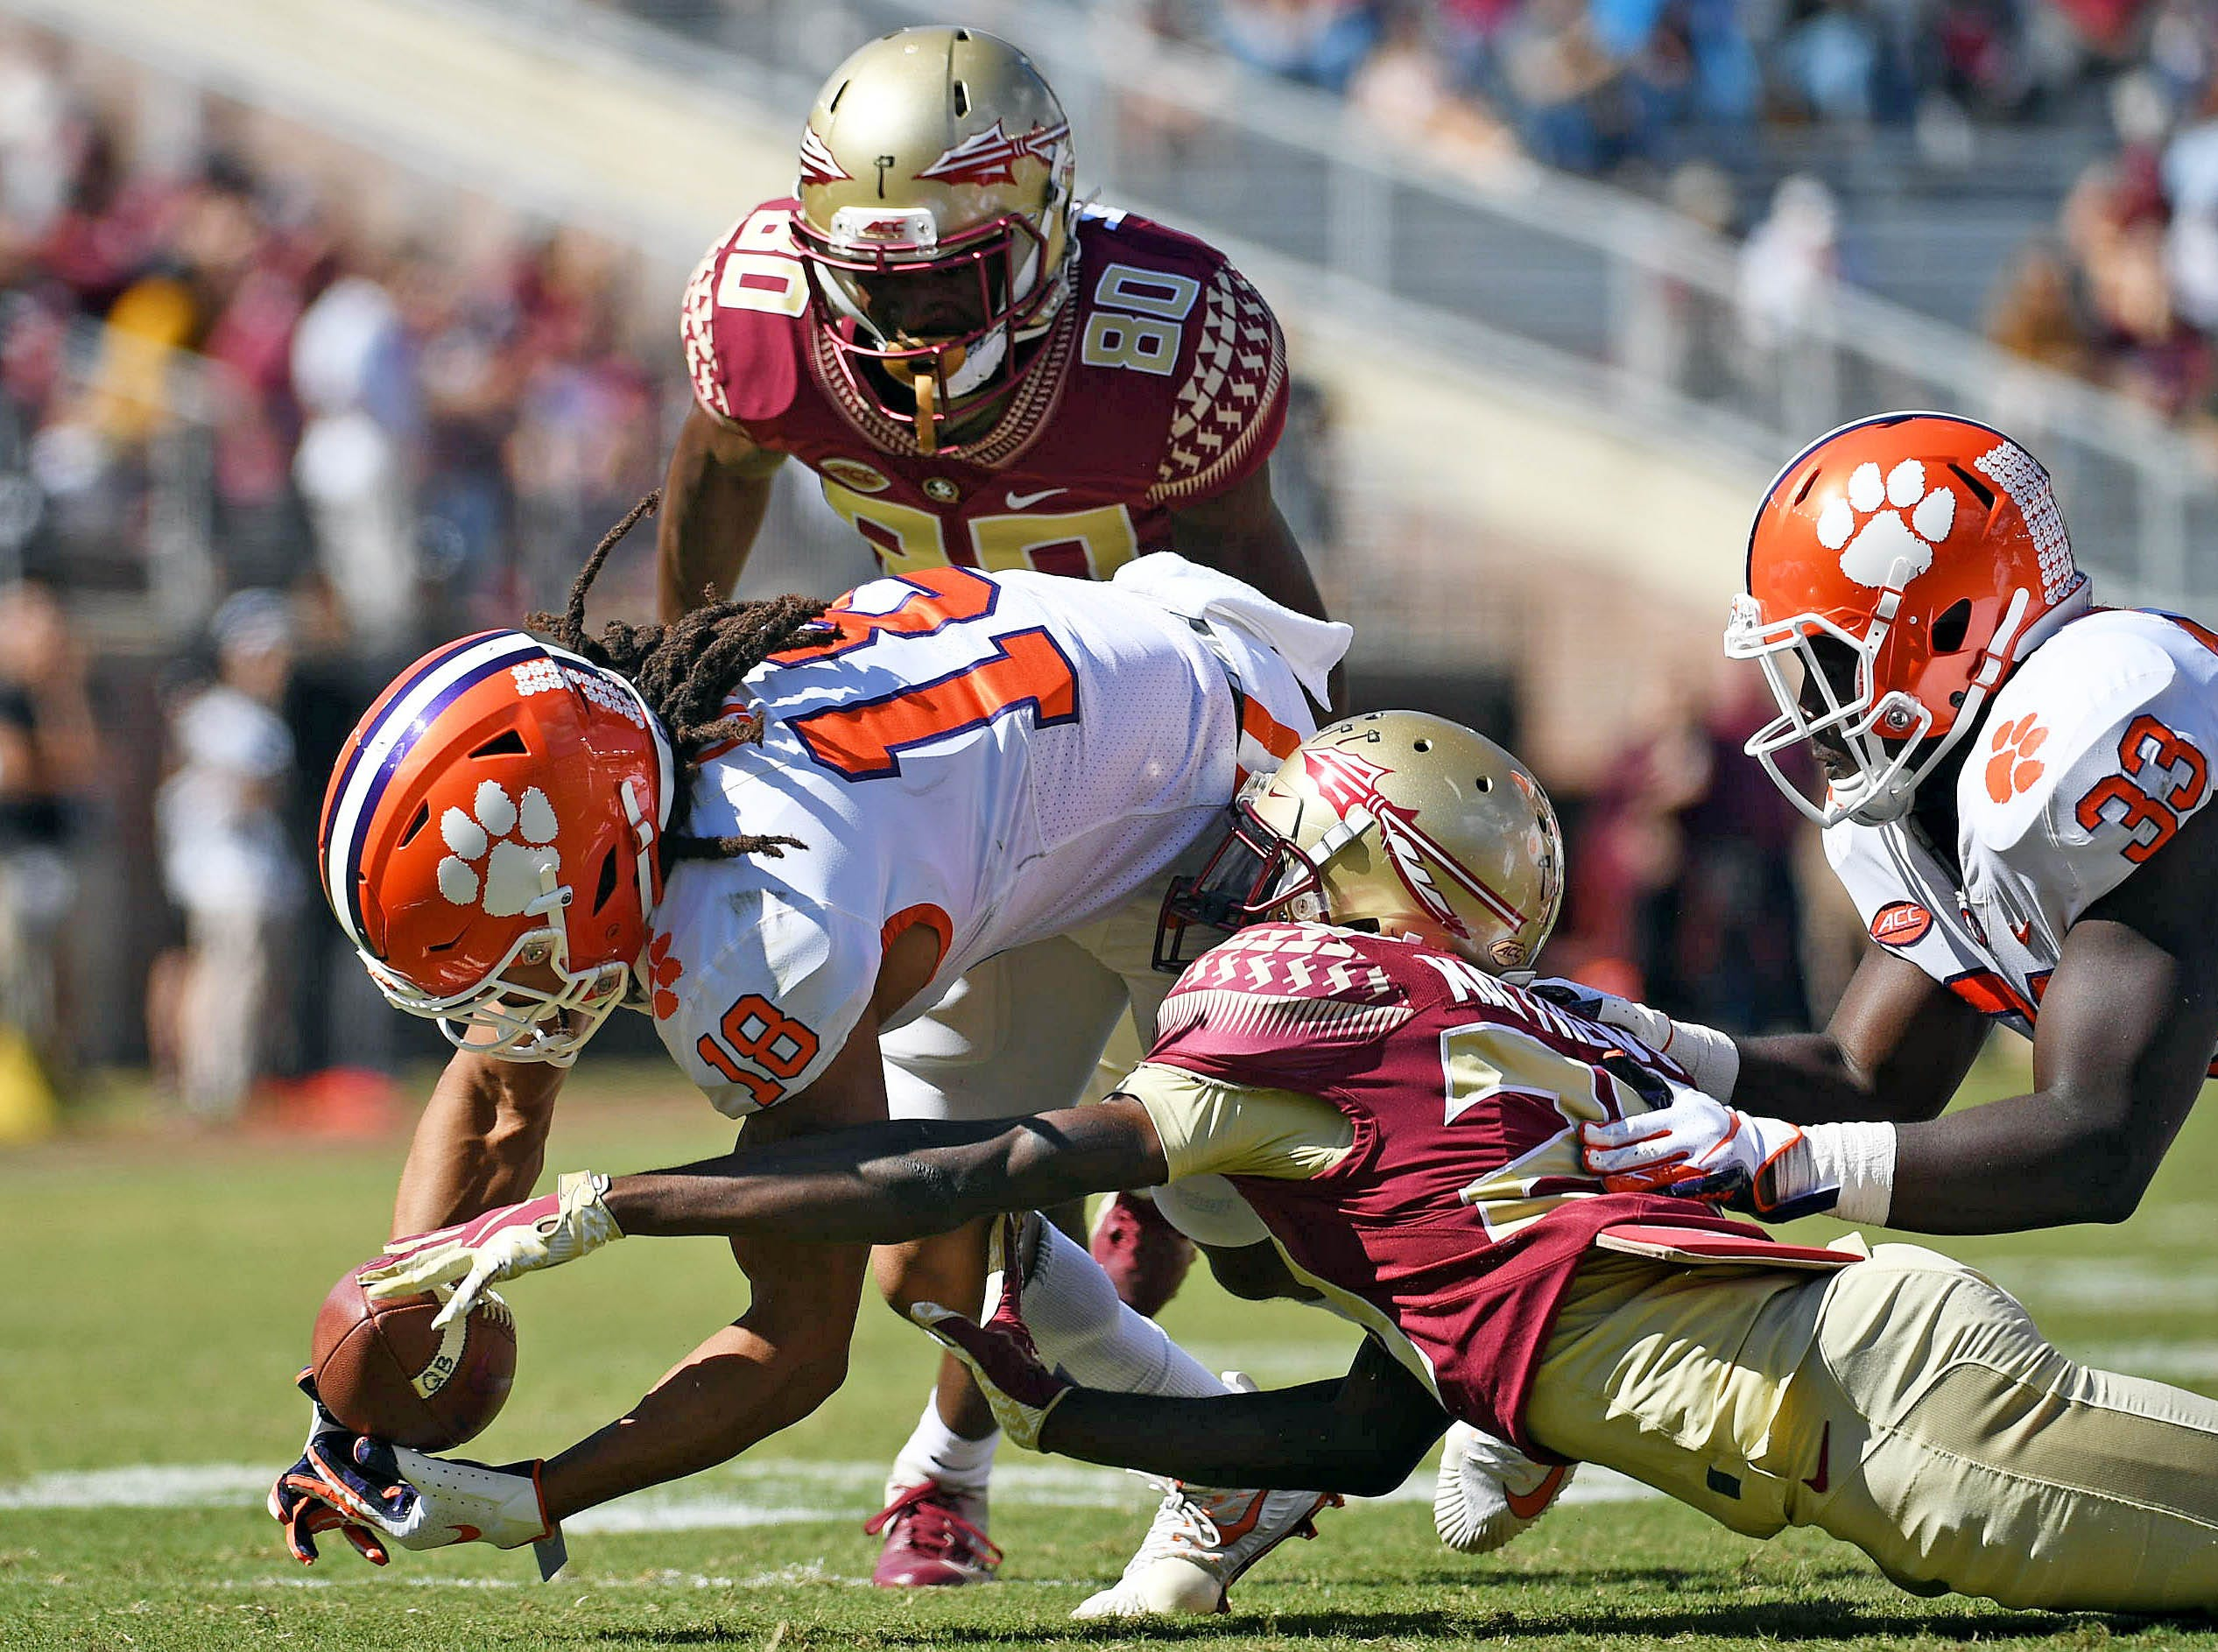 Clemson Tigers wide receiver TJ Chase (18) recovers a fumble on a punt by Florida State Seminoles wide receiver DJ Matthews (29) during the second half at Doak Campbell Stadium.